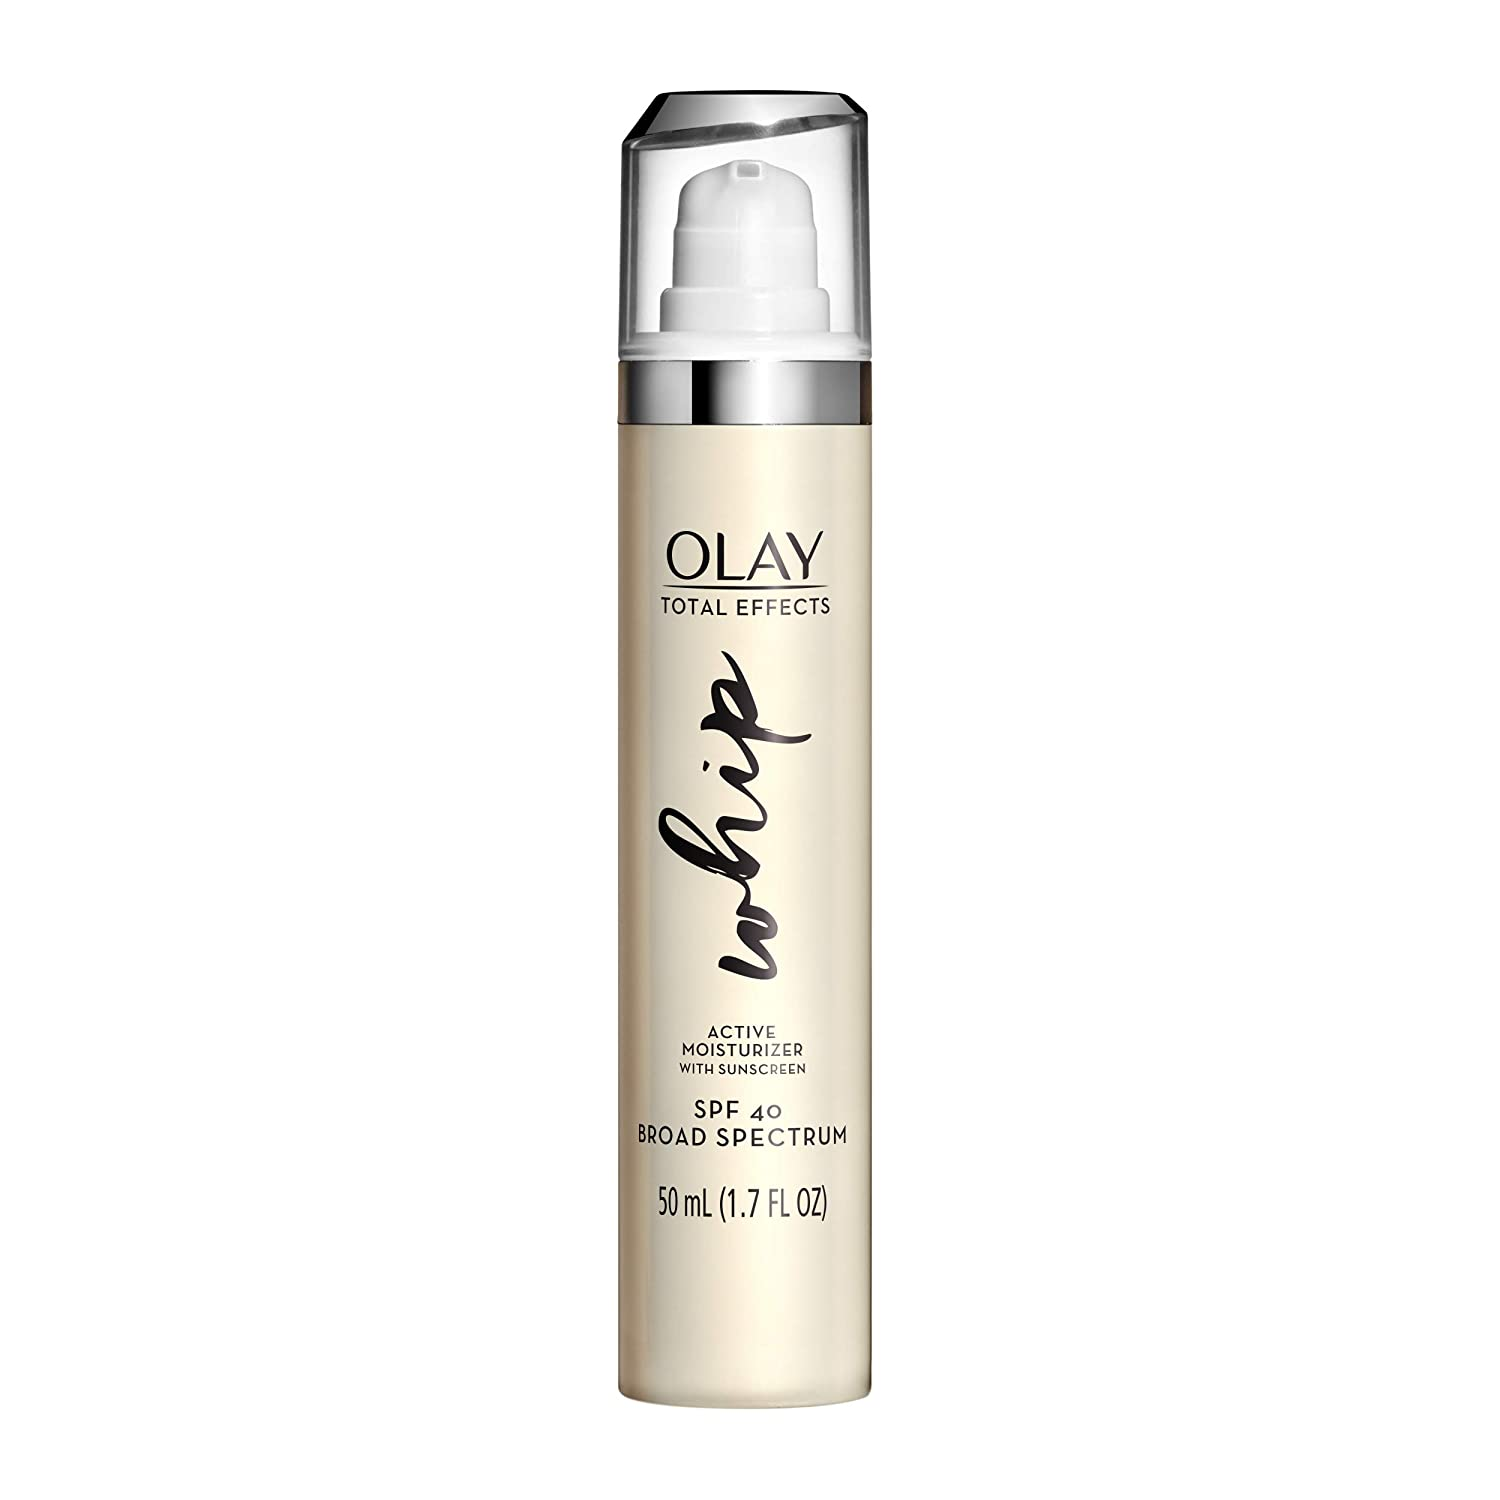 Face Moisturizer with SPF by Olay, Total Effects Whip Facial Sunscreen, Vitamin C, and B3, SPF 40 with UVA and UVB Protection, 1.7 Fl Oz